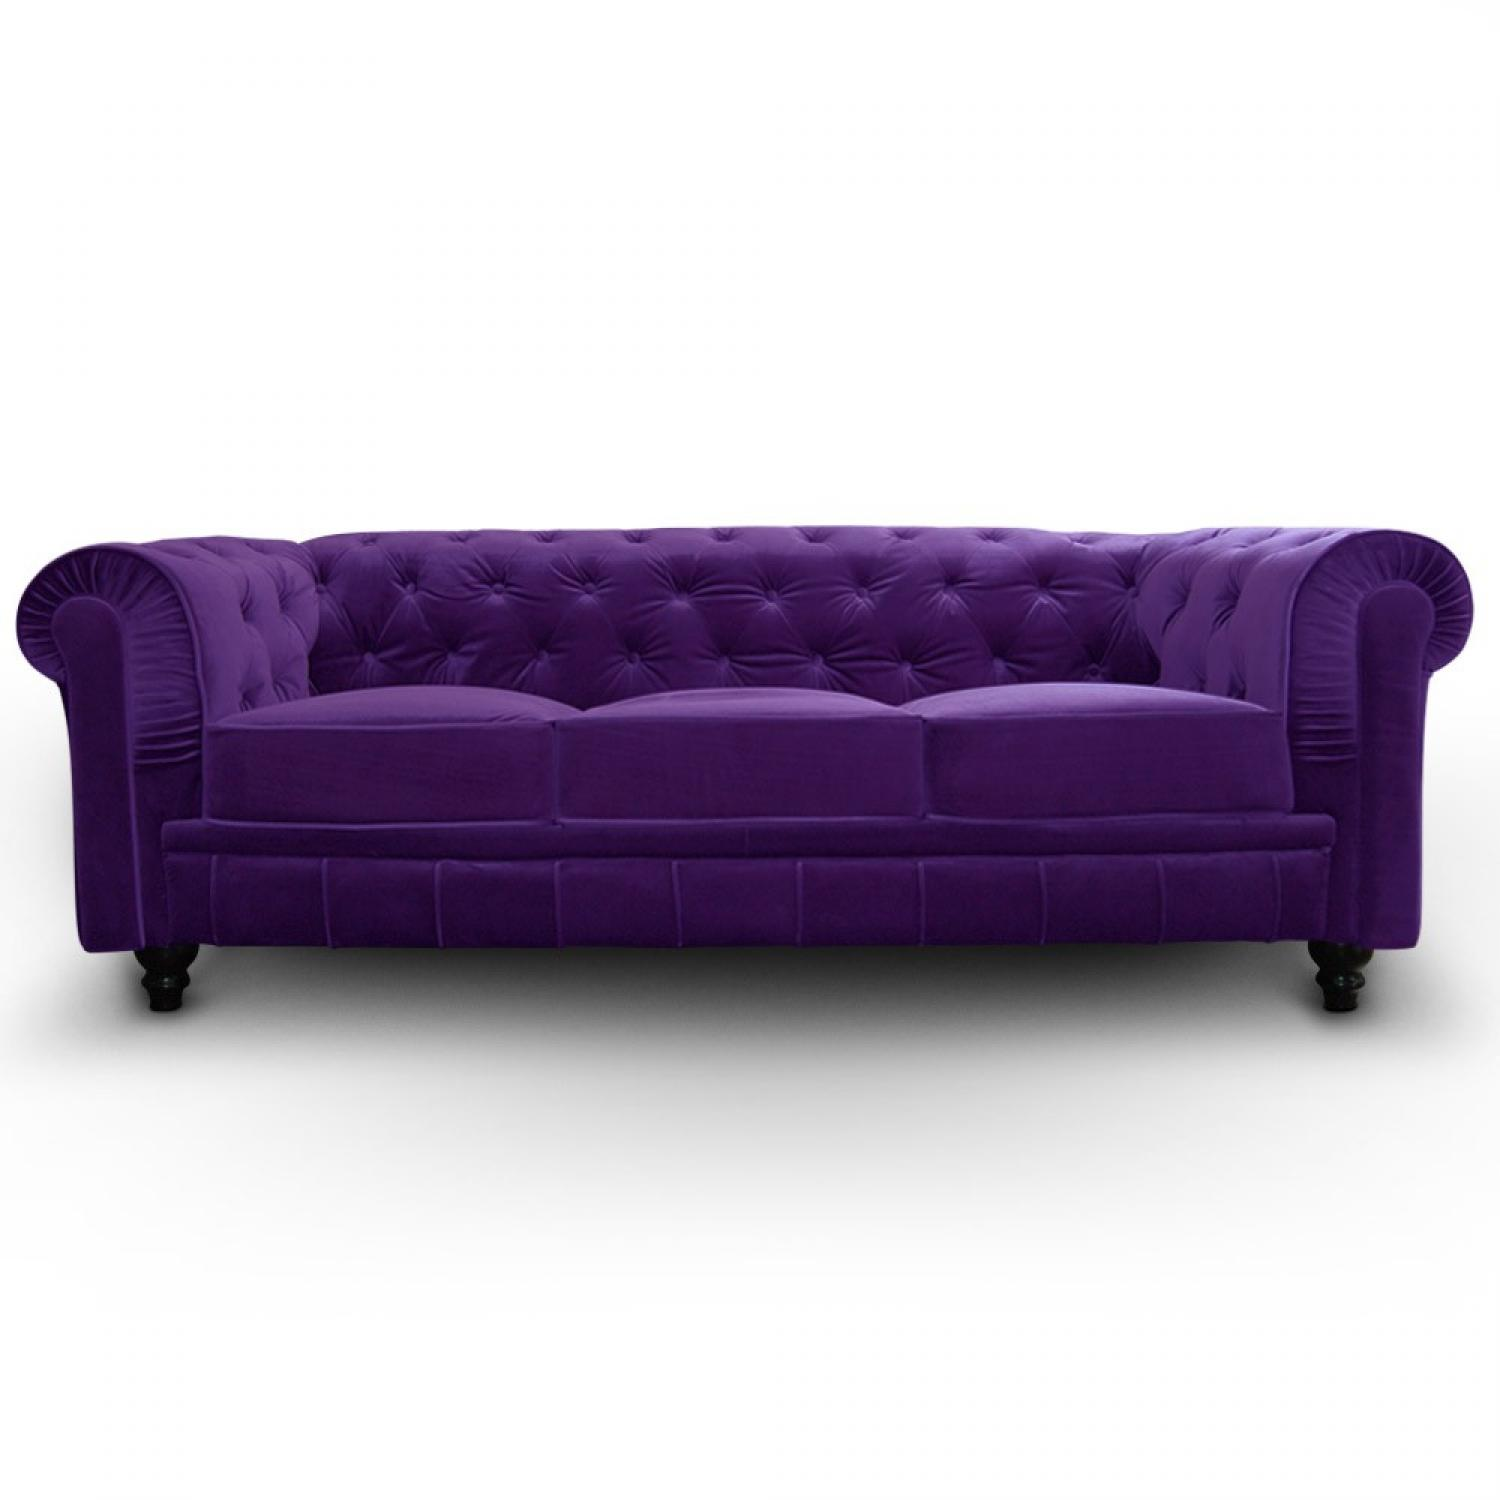 Photos canap chesterfield velours violet - Canape chesterfield violet ...